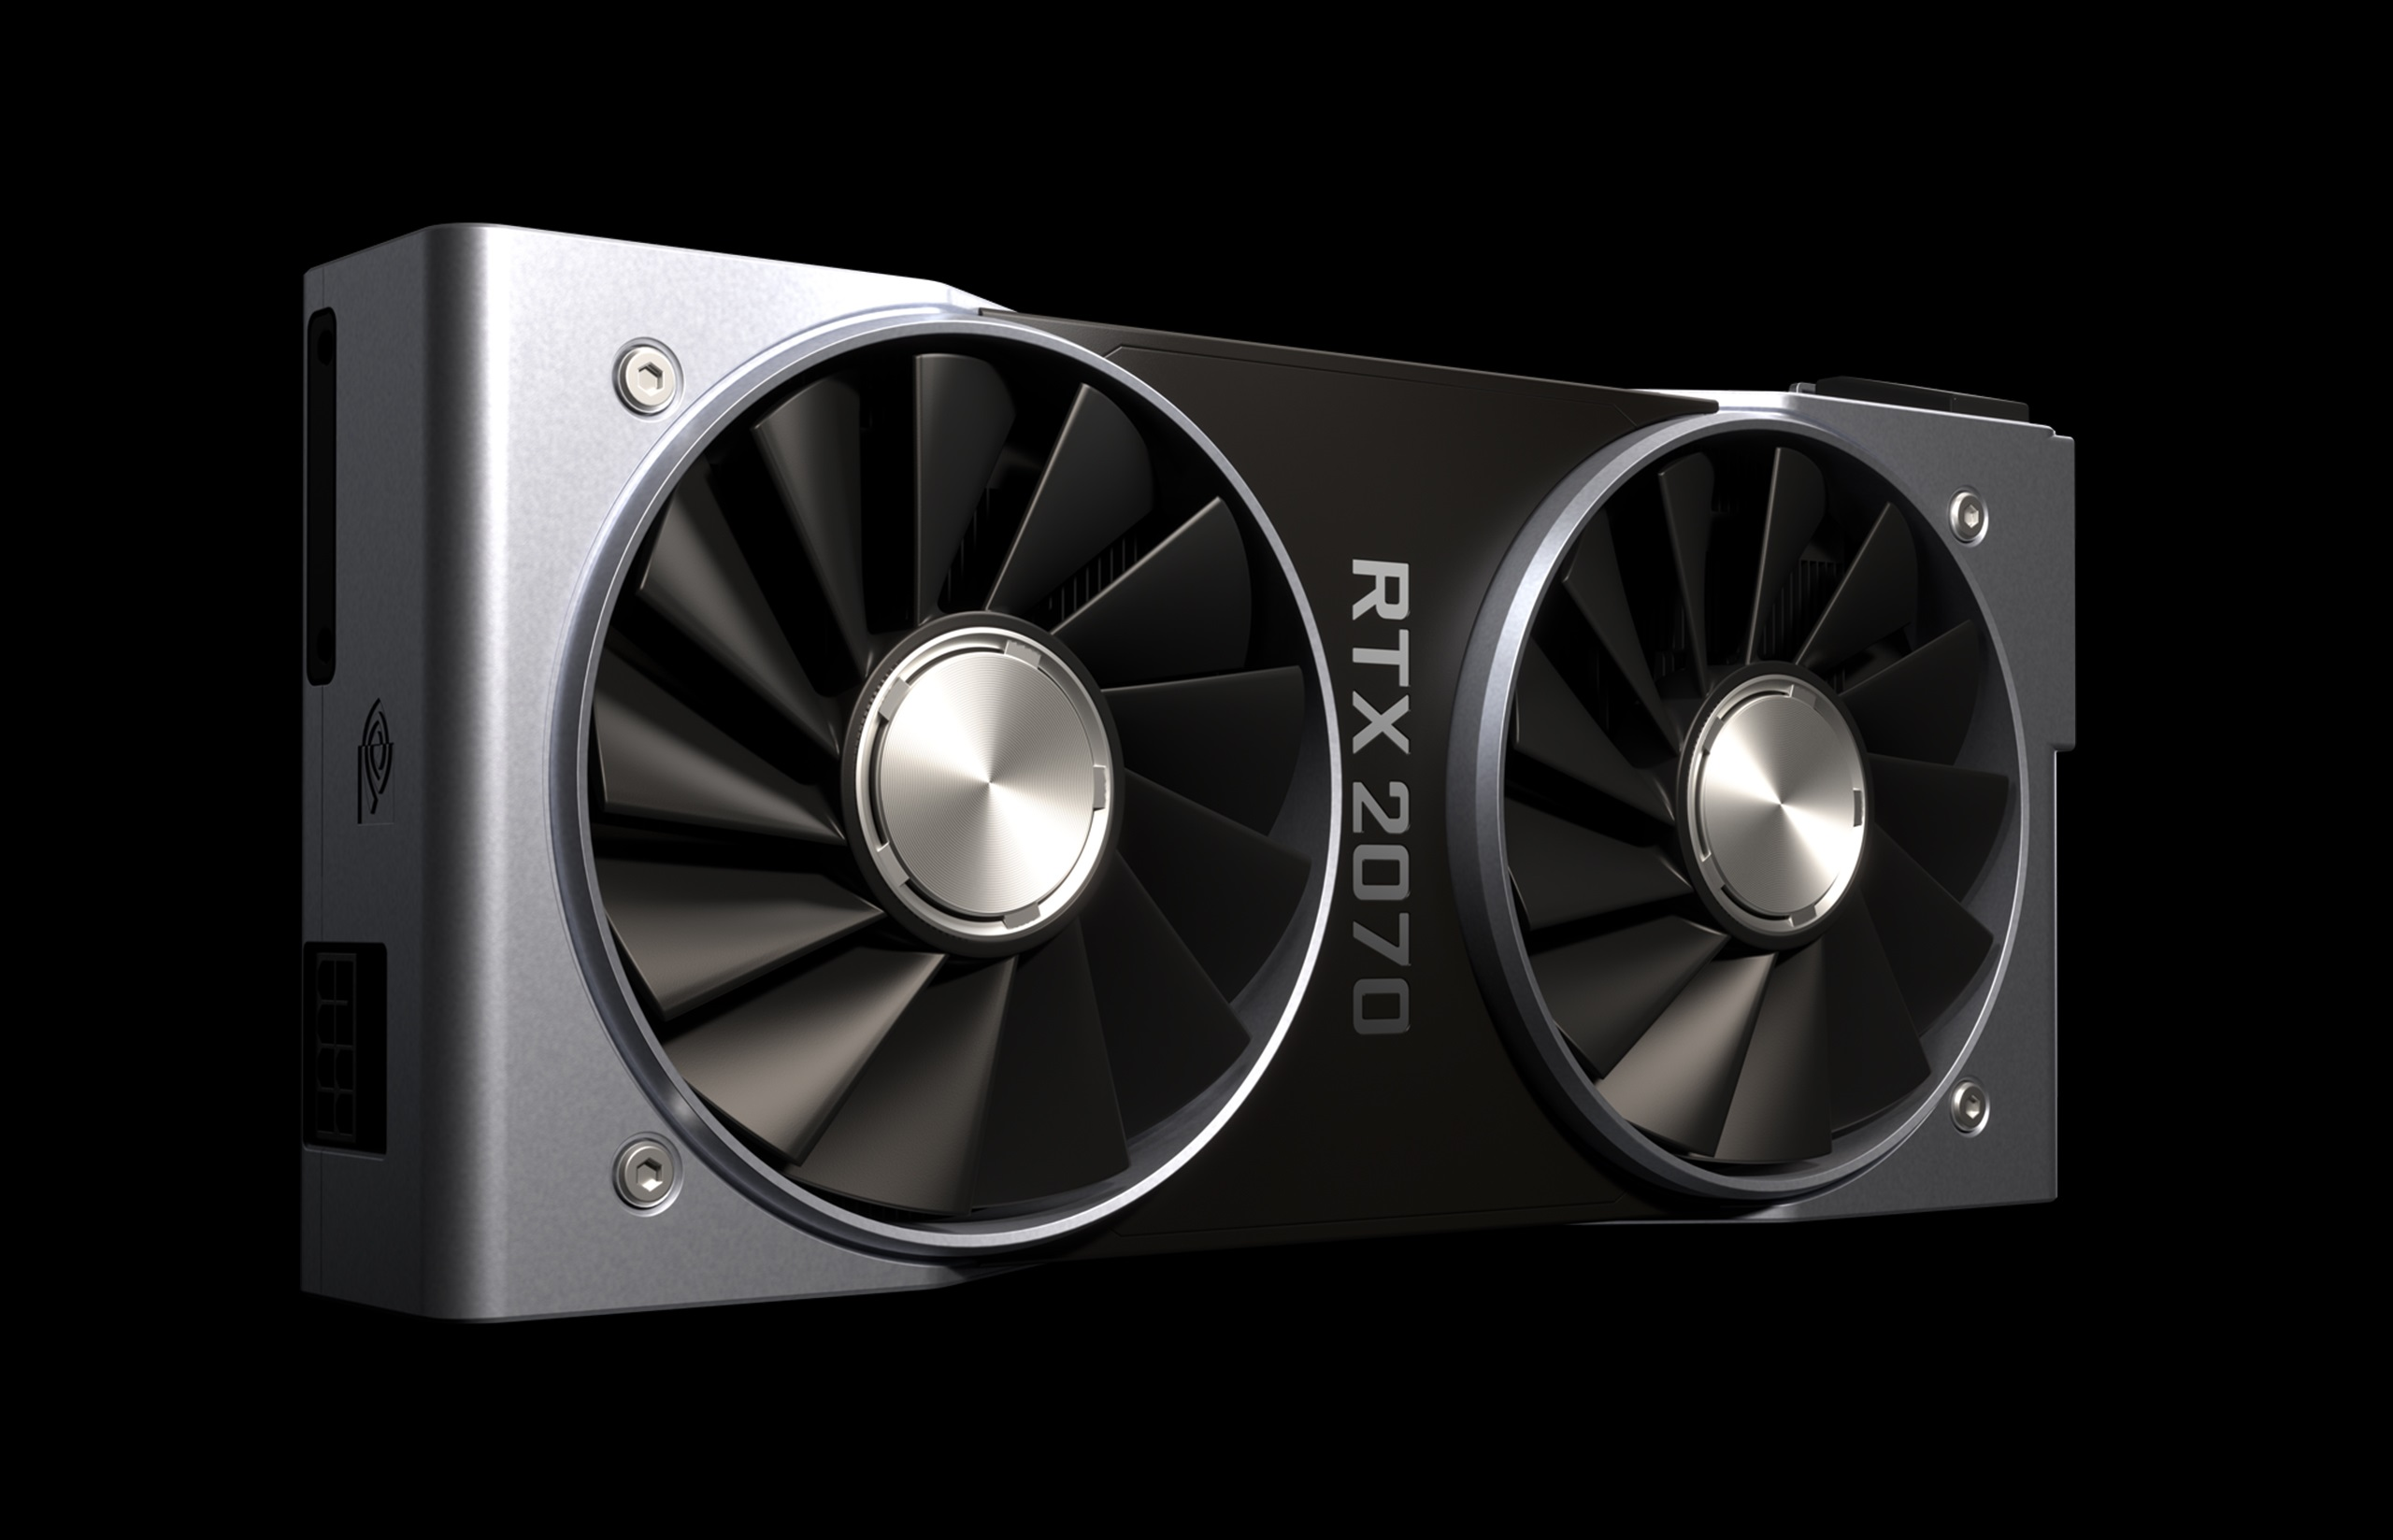 NVIDIA Scuttles AMD's Plans With Release Of RX 5700 XT; RTX 2070 Super Remains The Video Card To Beat